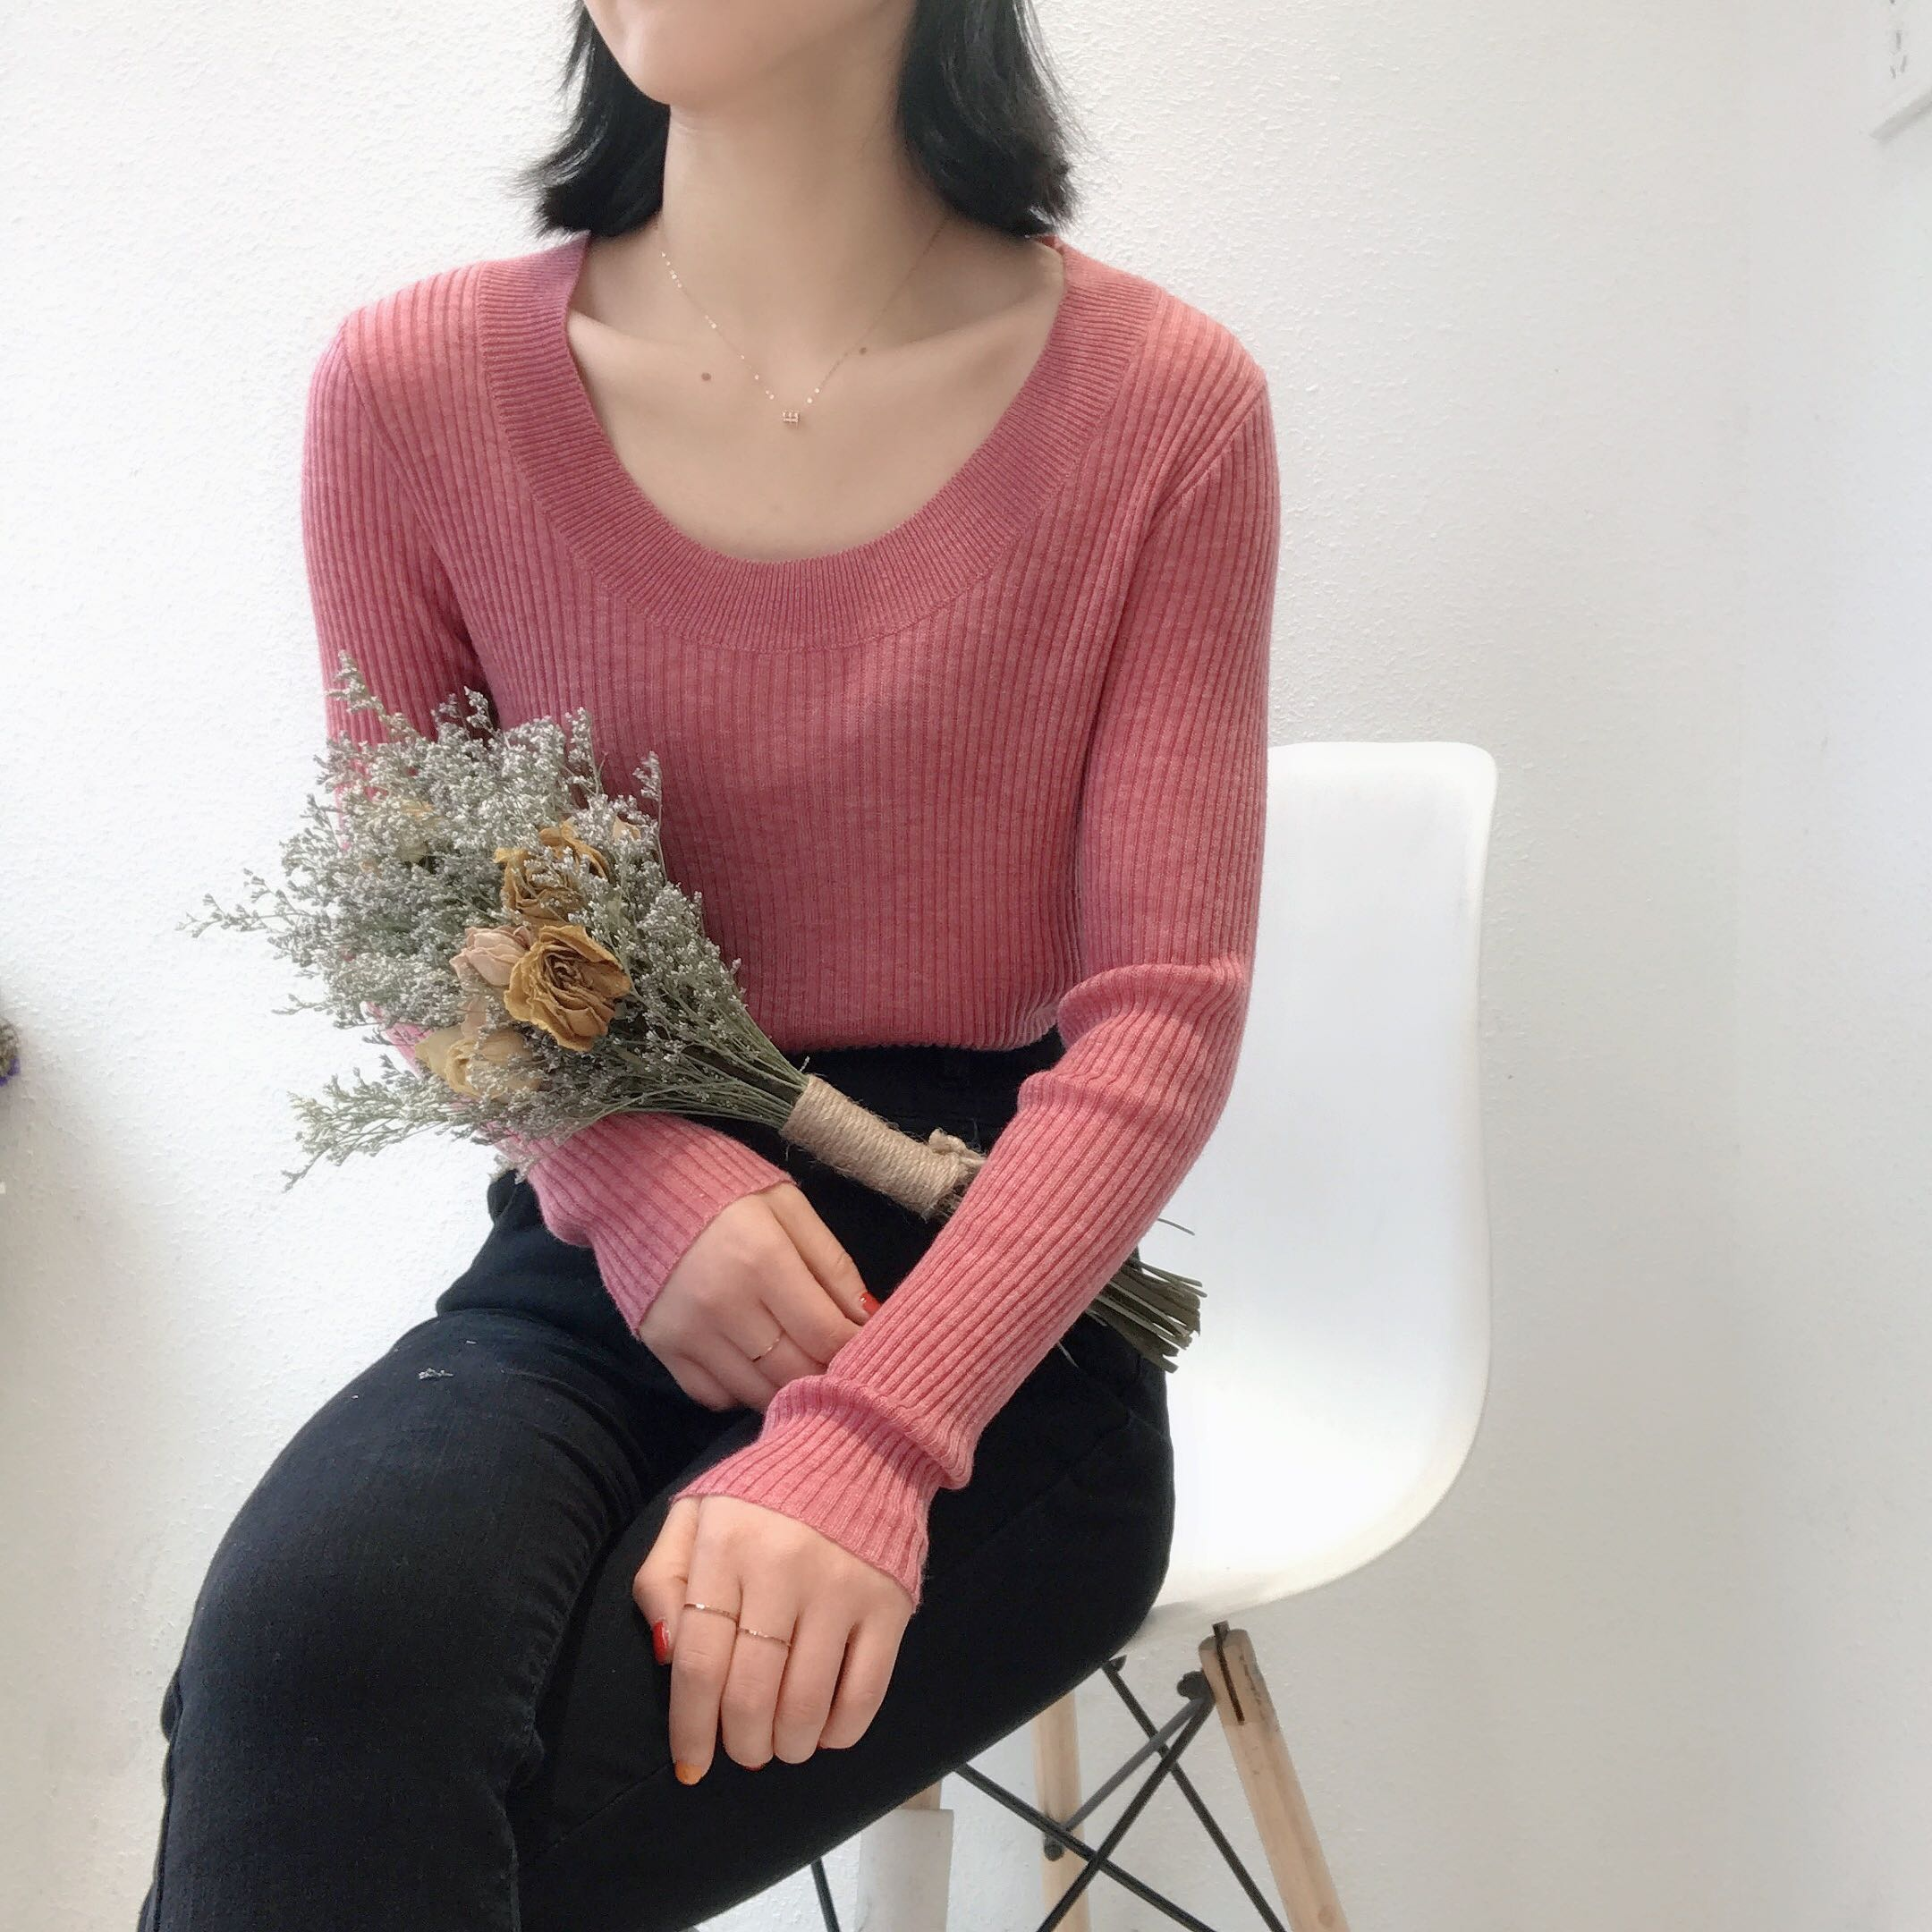 2020 new autumn womens basic style slim fitting round neck long sleeve Pullover Sweater sweater 7001